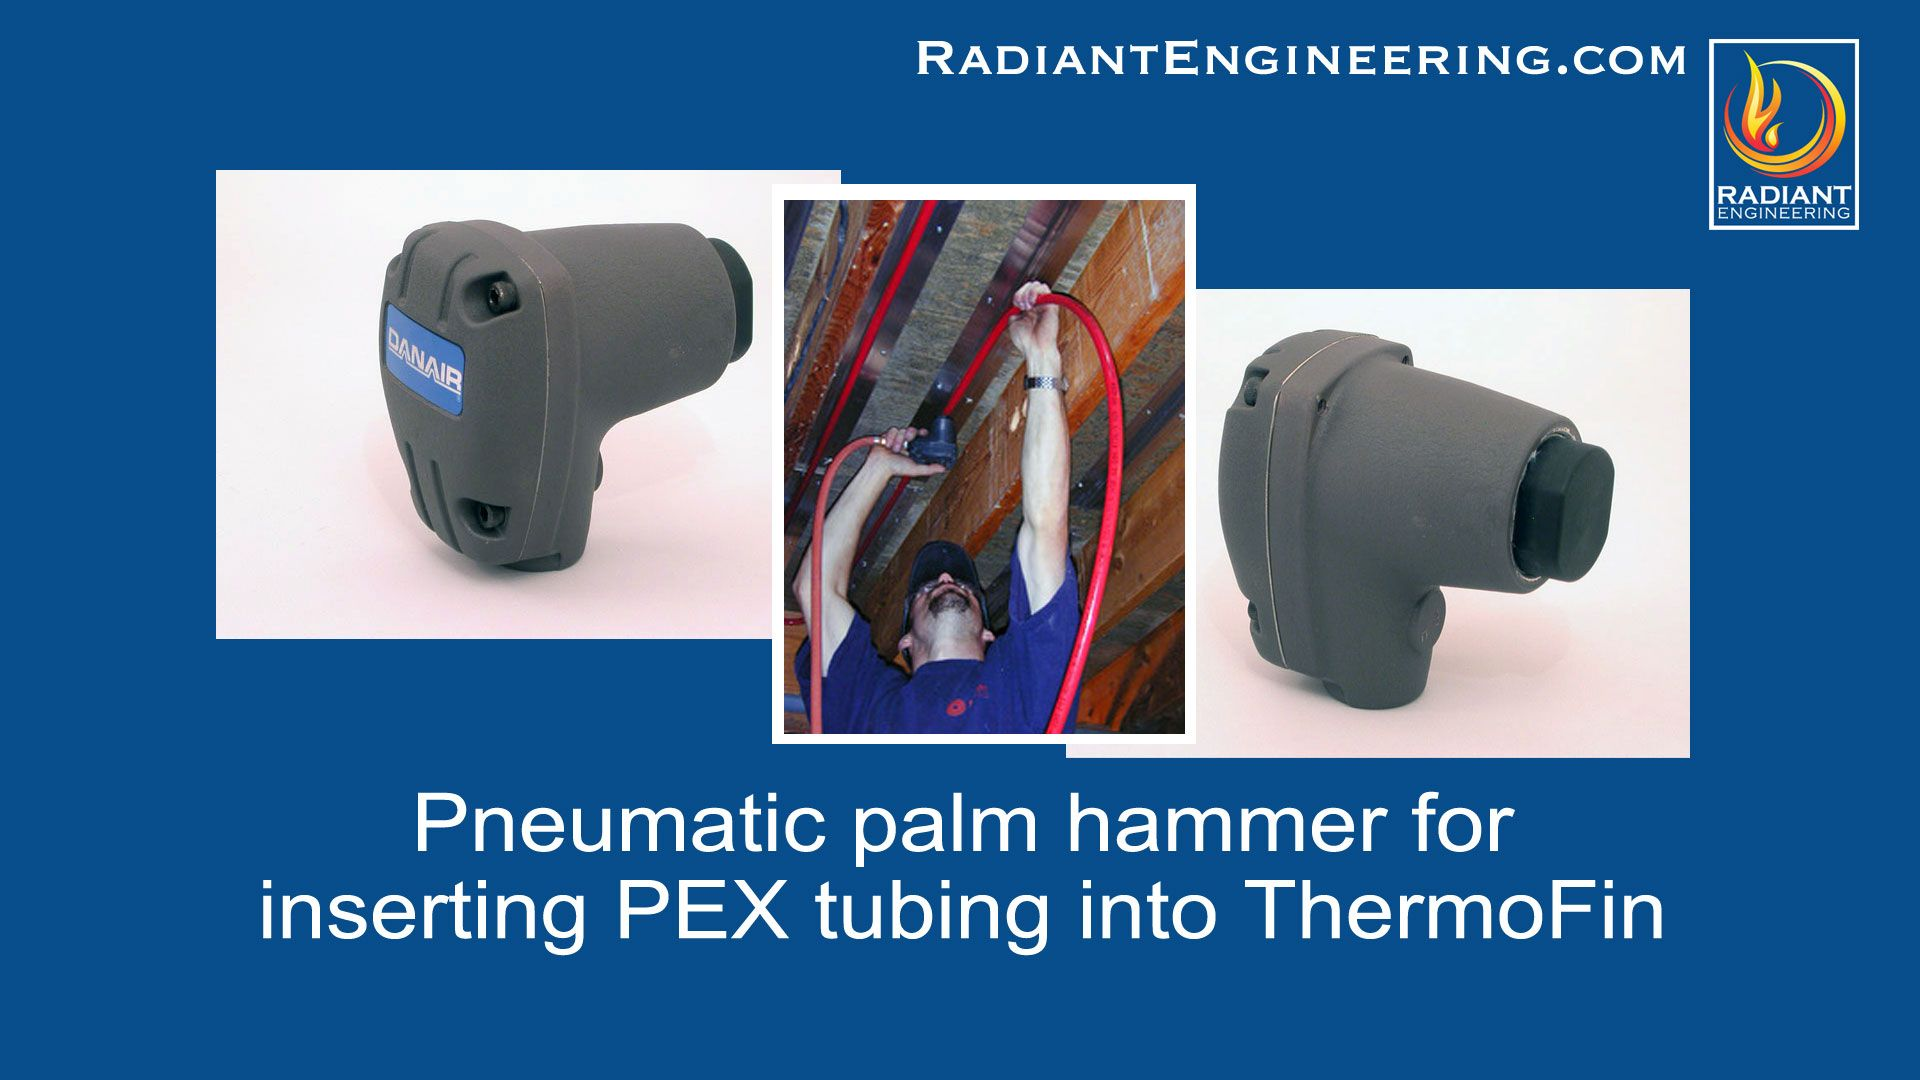 Thermofin C And Pex Tubing For Radiant Heating Install With A Pneumatic Palm Hammer Free Samples Of Thermof Pex Tubing Radiant Heat Energy Efficient Heating